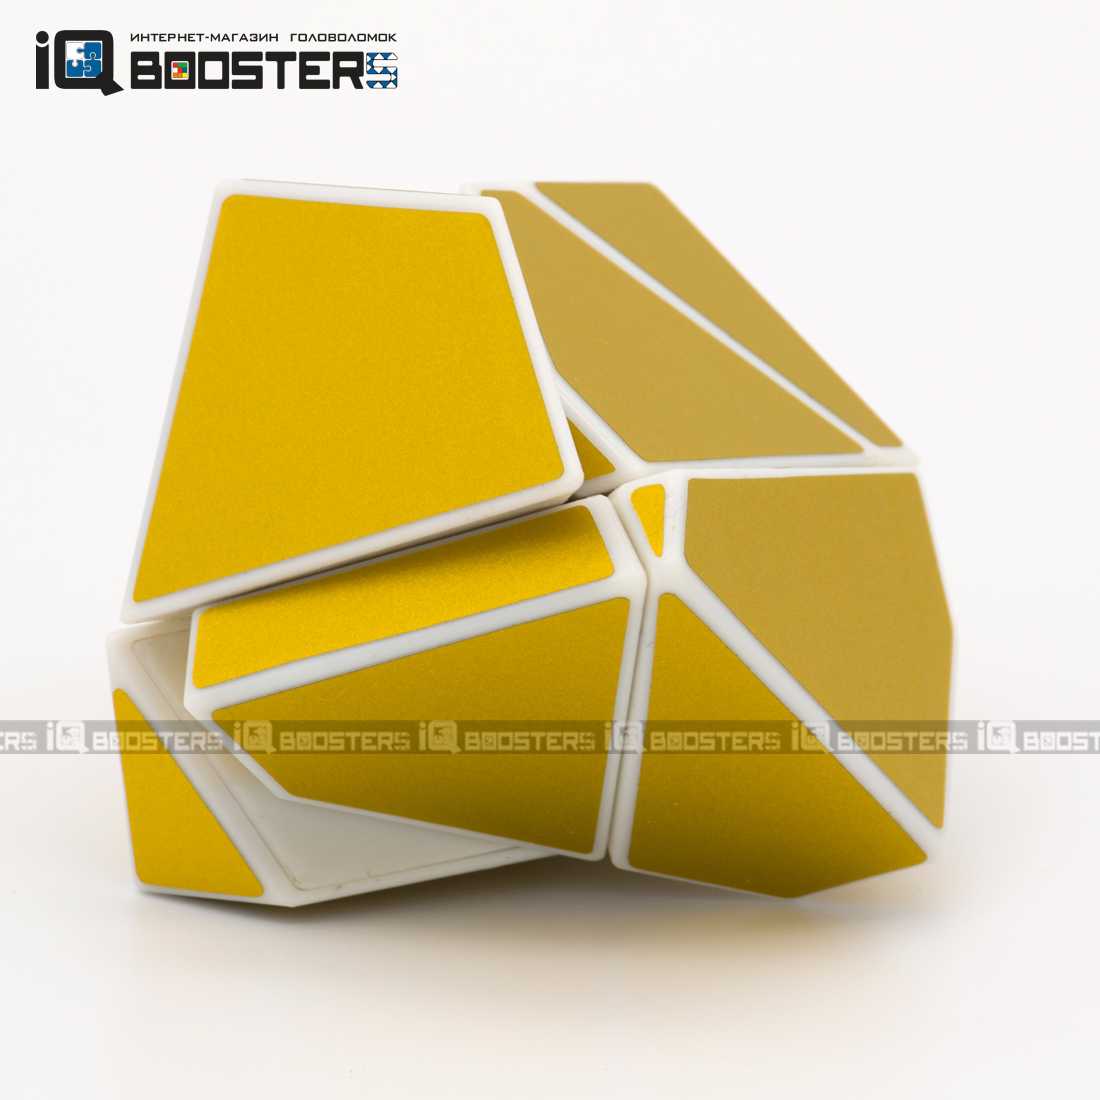 limcube_ghost_2x2_3g